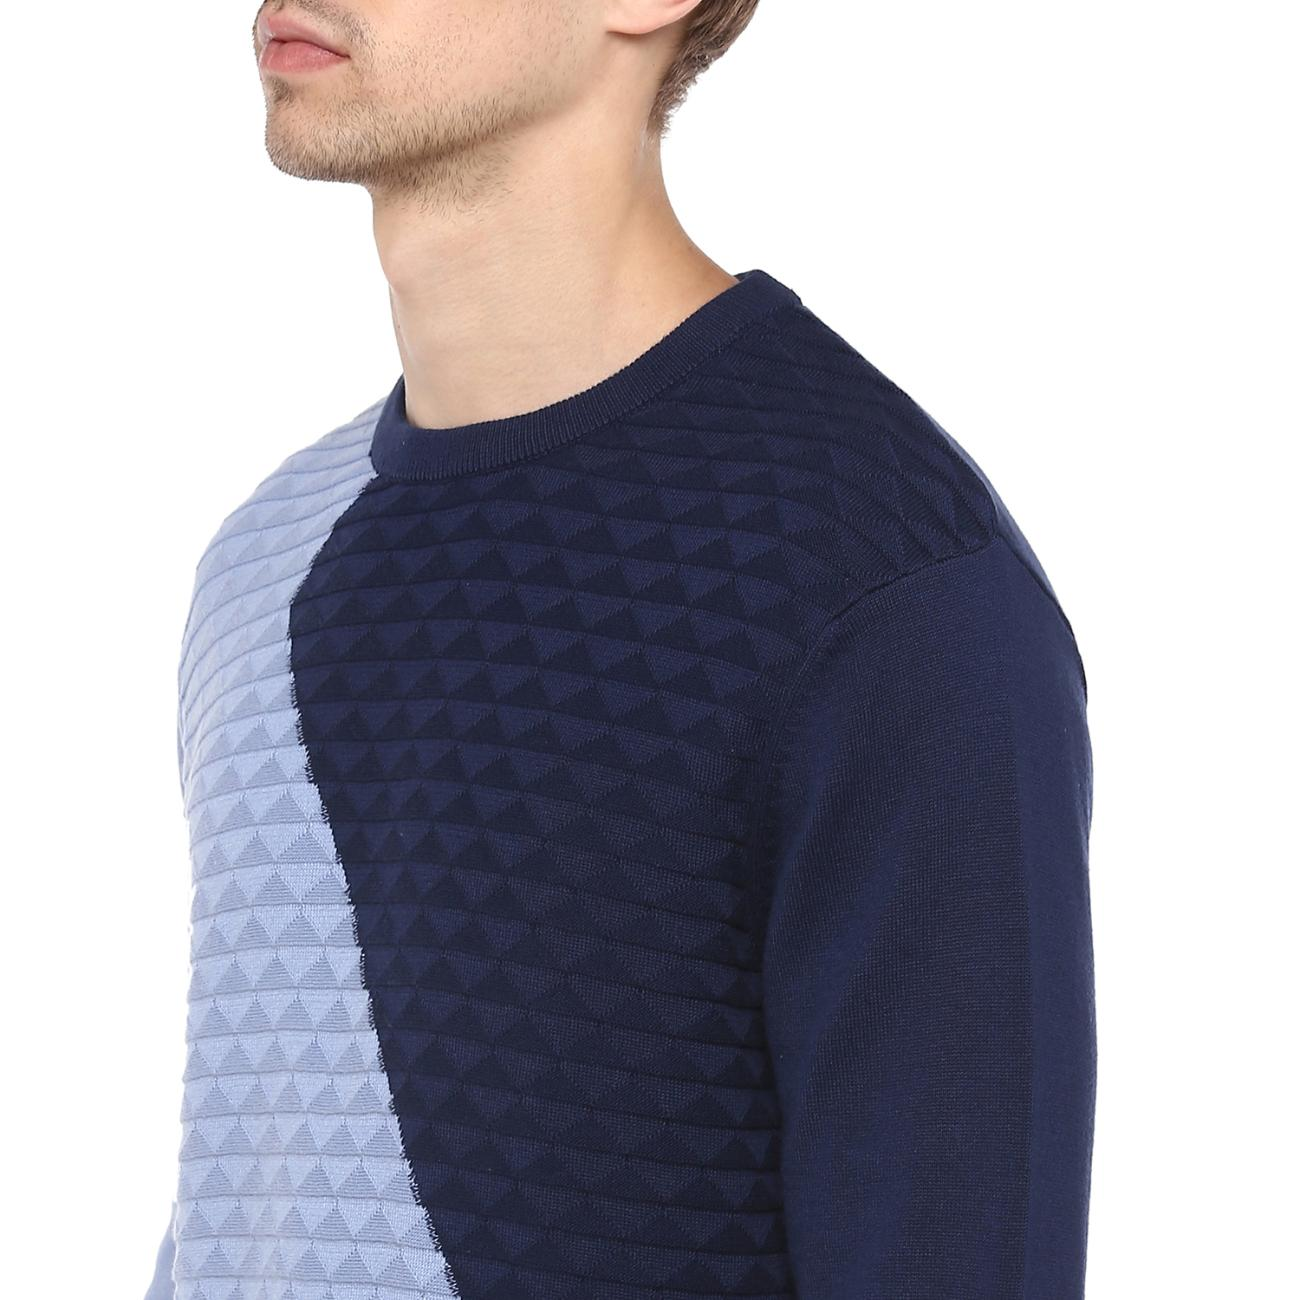 Purchase Blue Colour Blocked Sweater Online